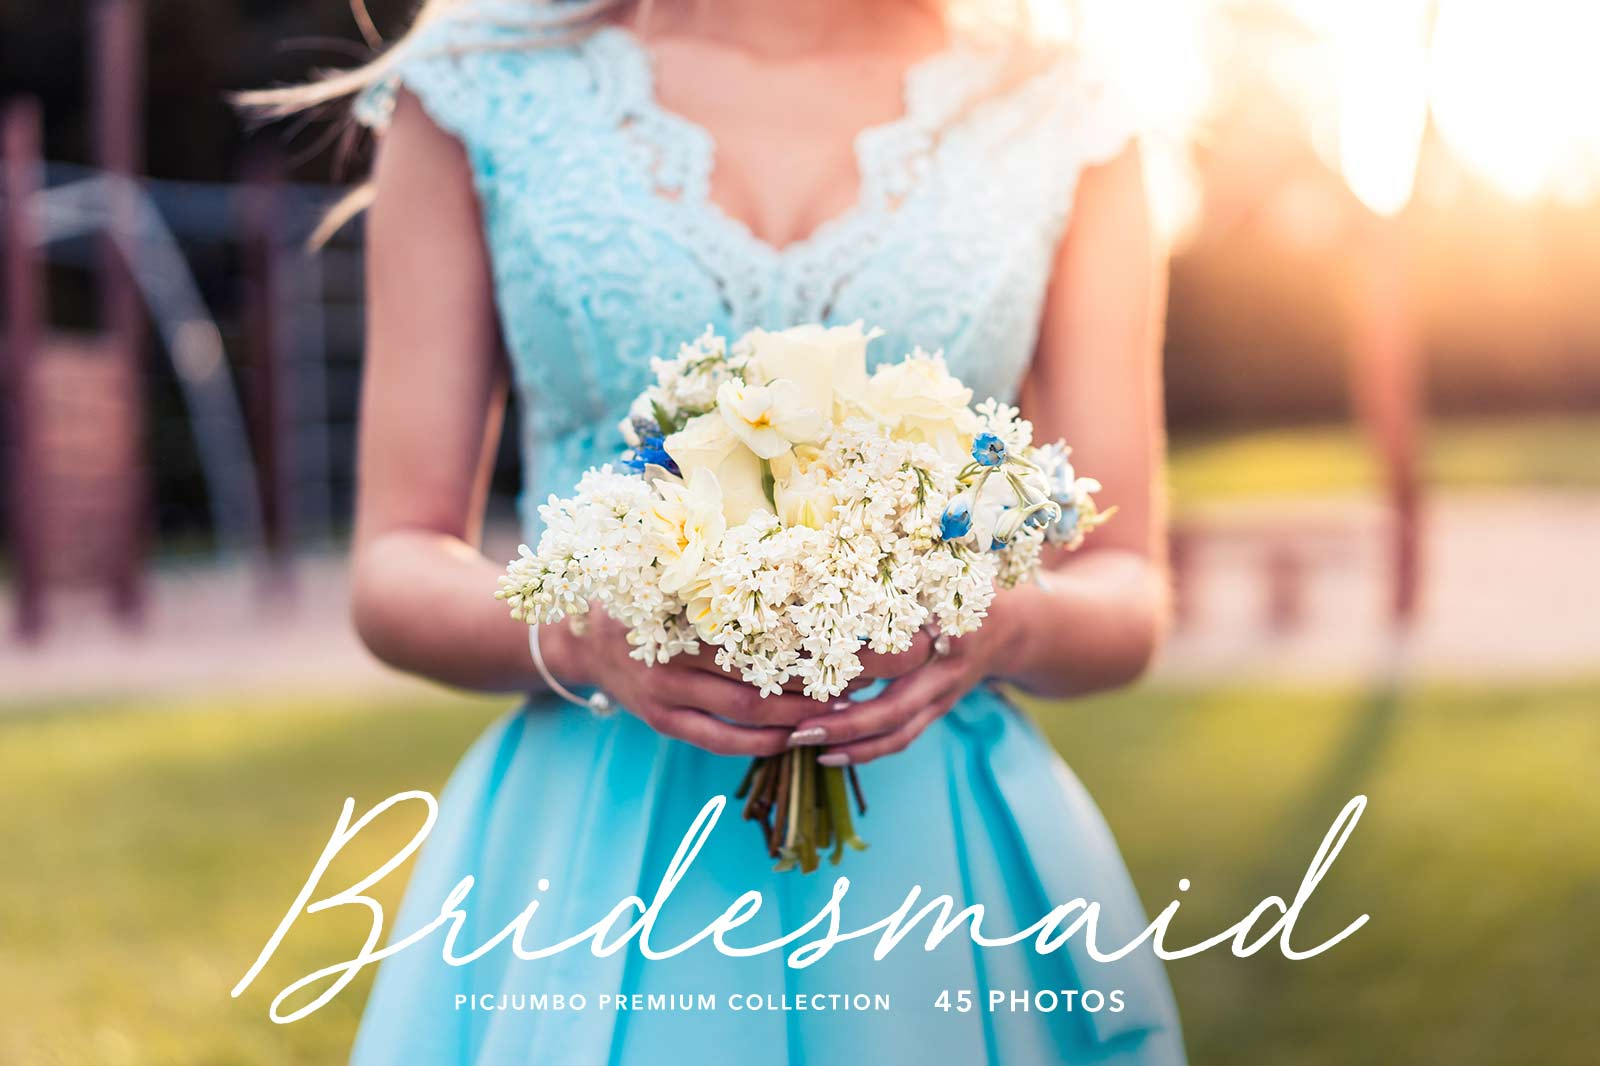 Join PREMIUM and get full collection now: Bridesmaid